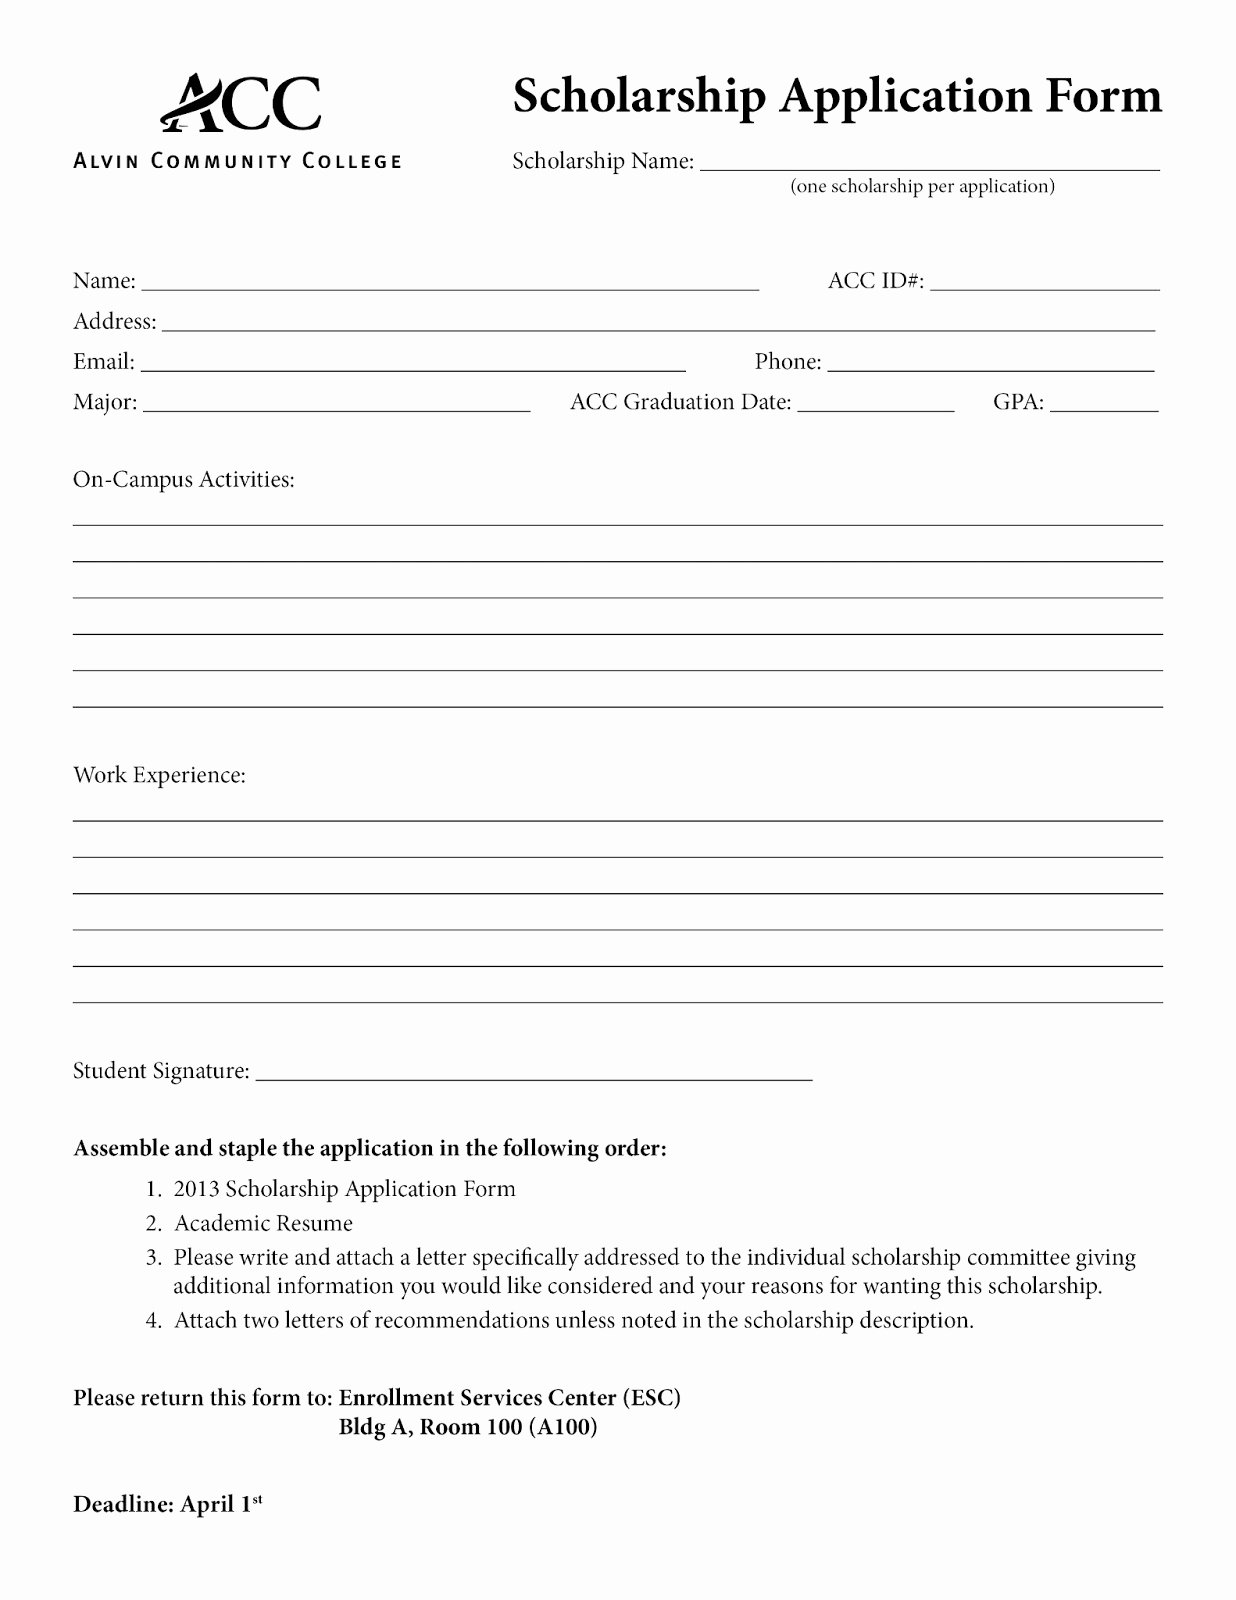 Scholarship Application form Template Elegant Application form Basic Application form Template